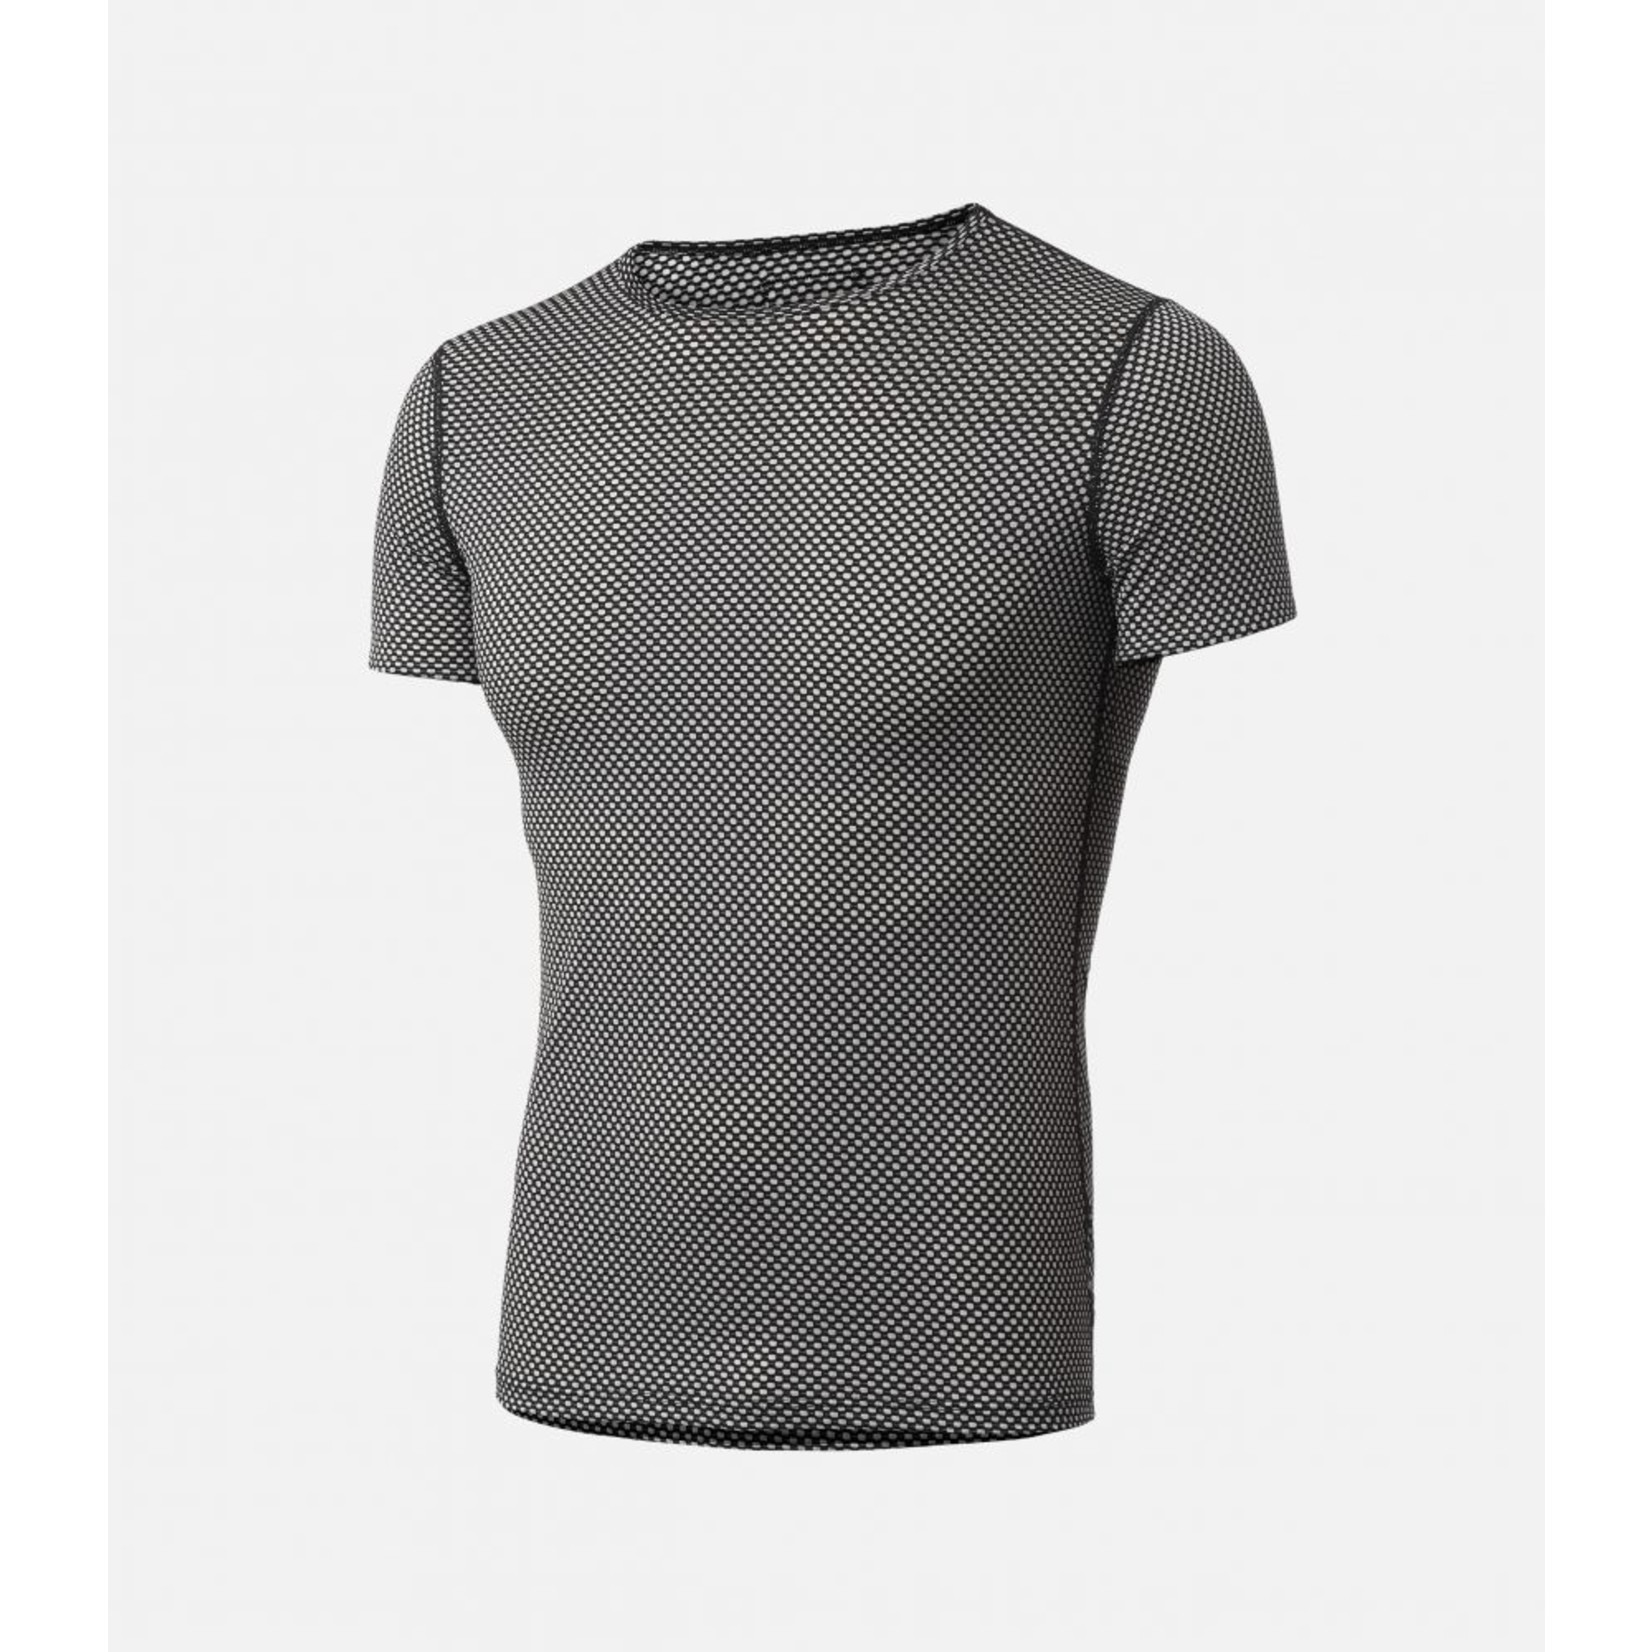 PEdALED PEdALED Ultralight Base layer XL